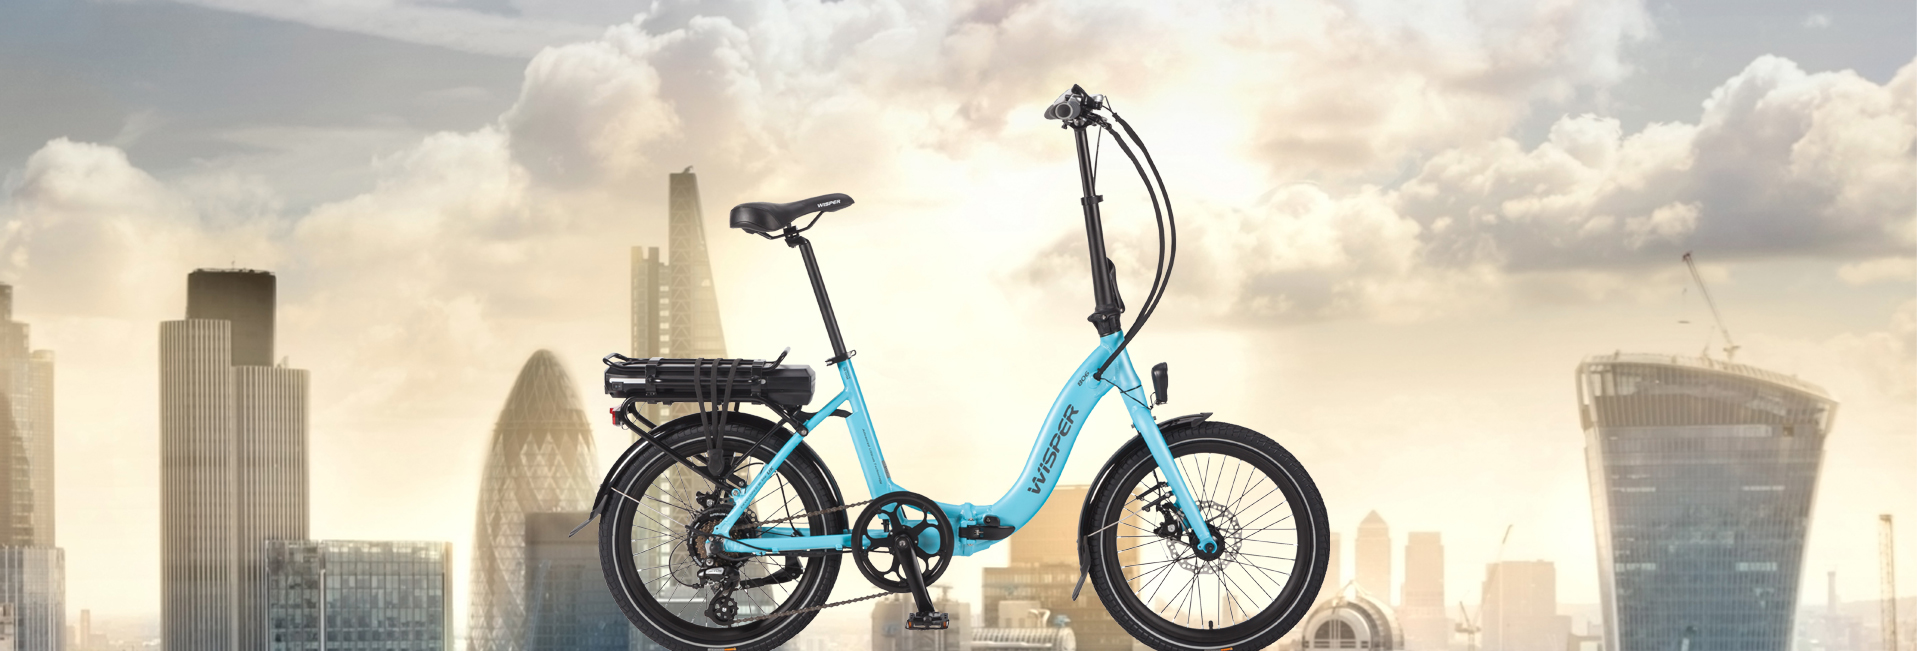 806 folding electric bike Banner